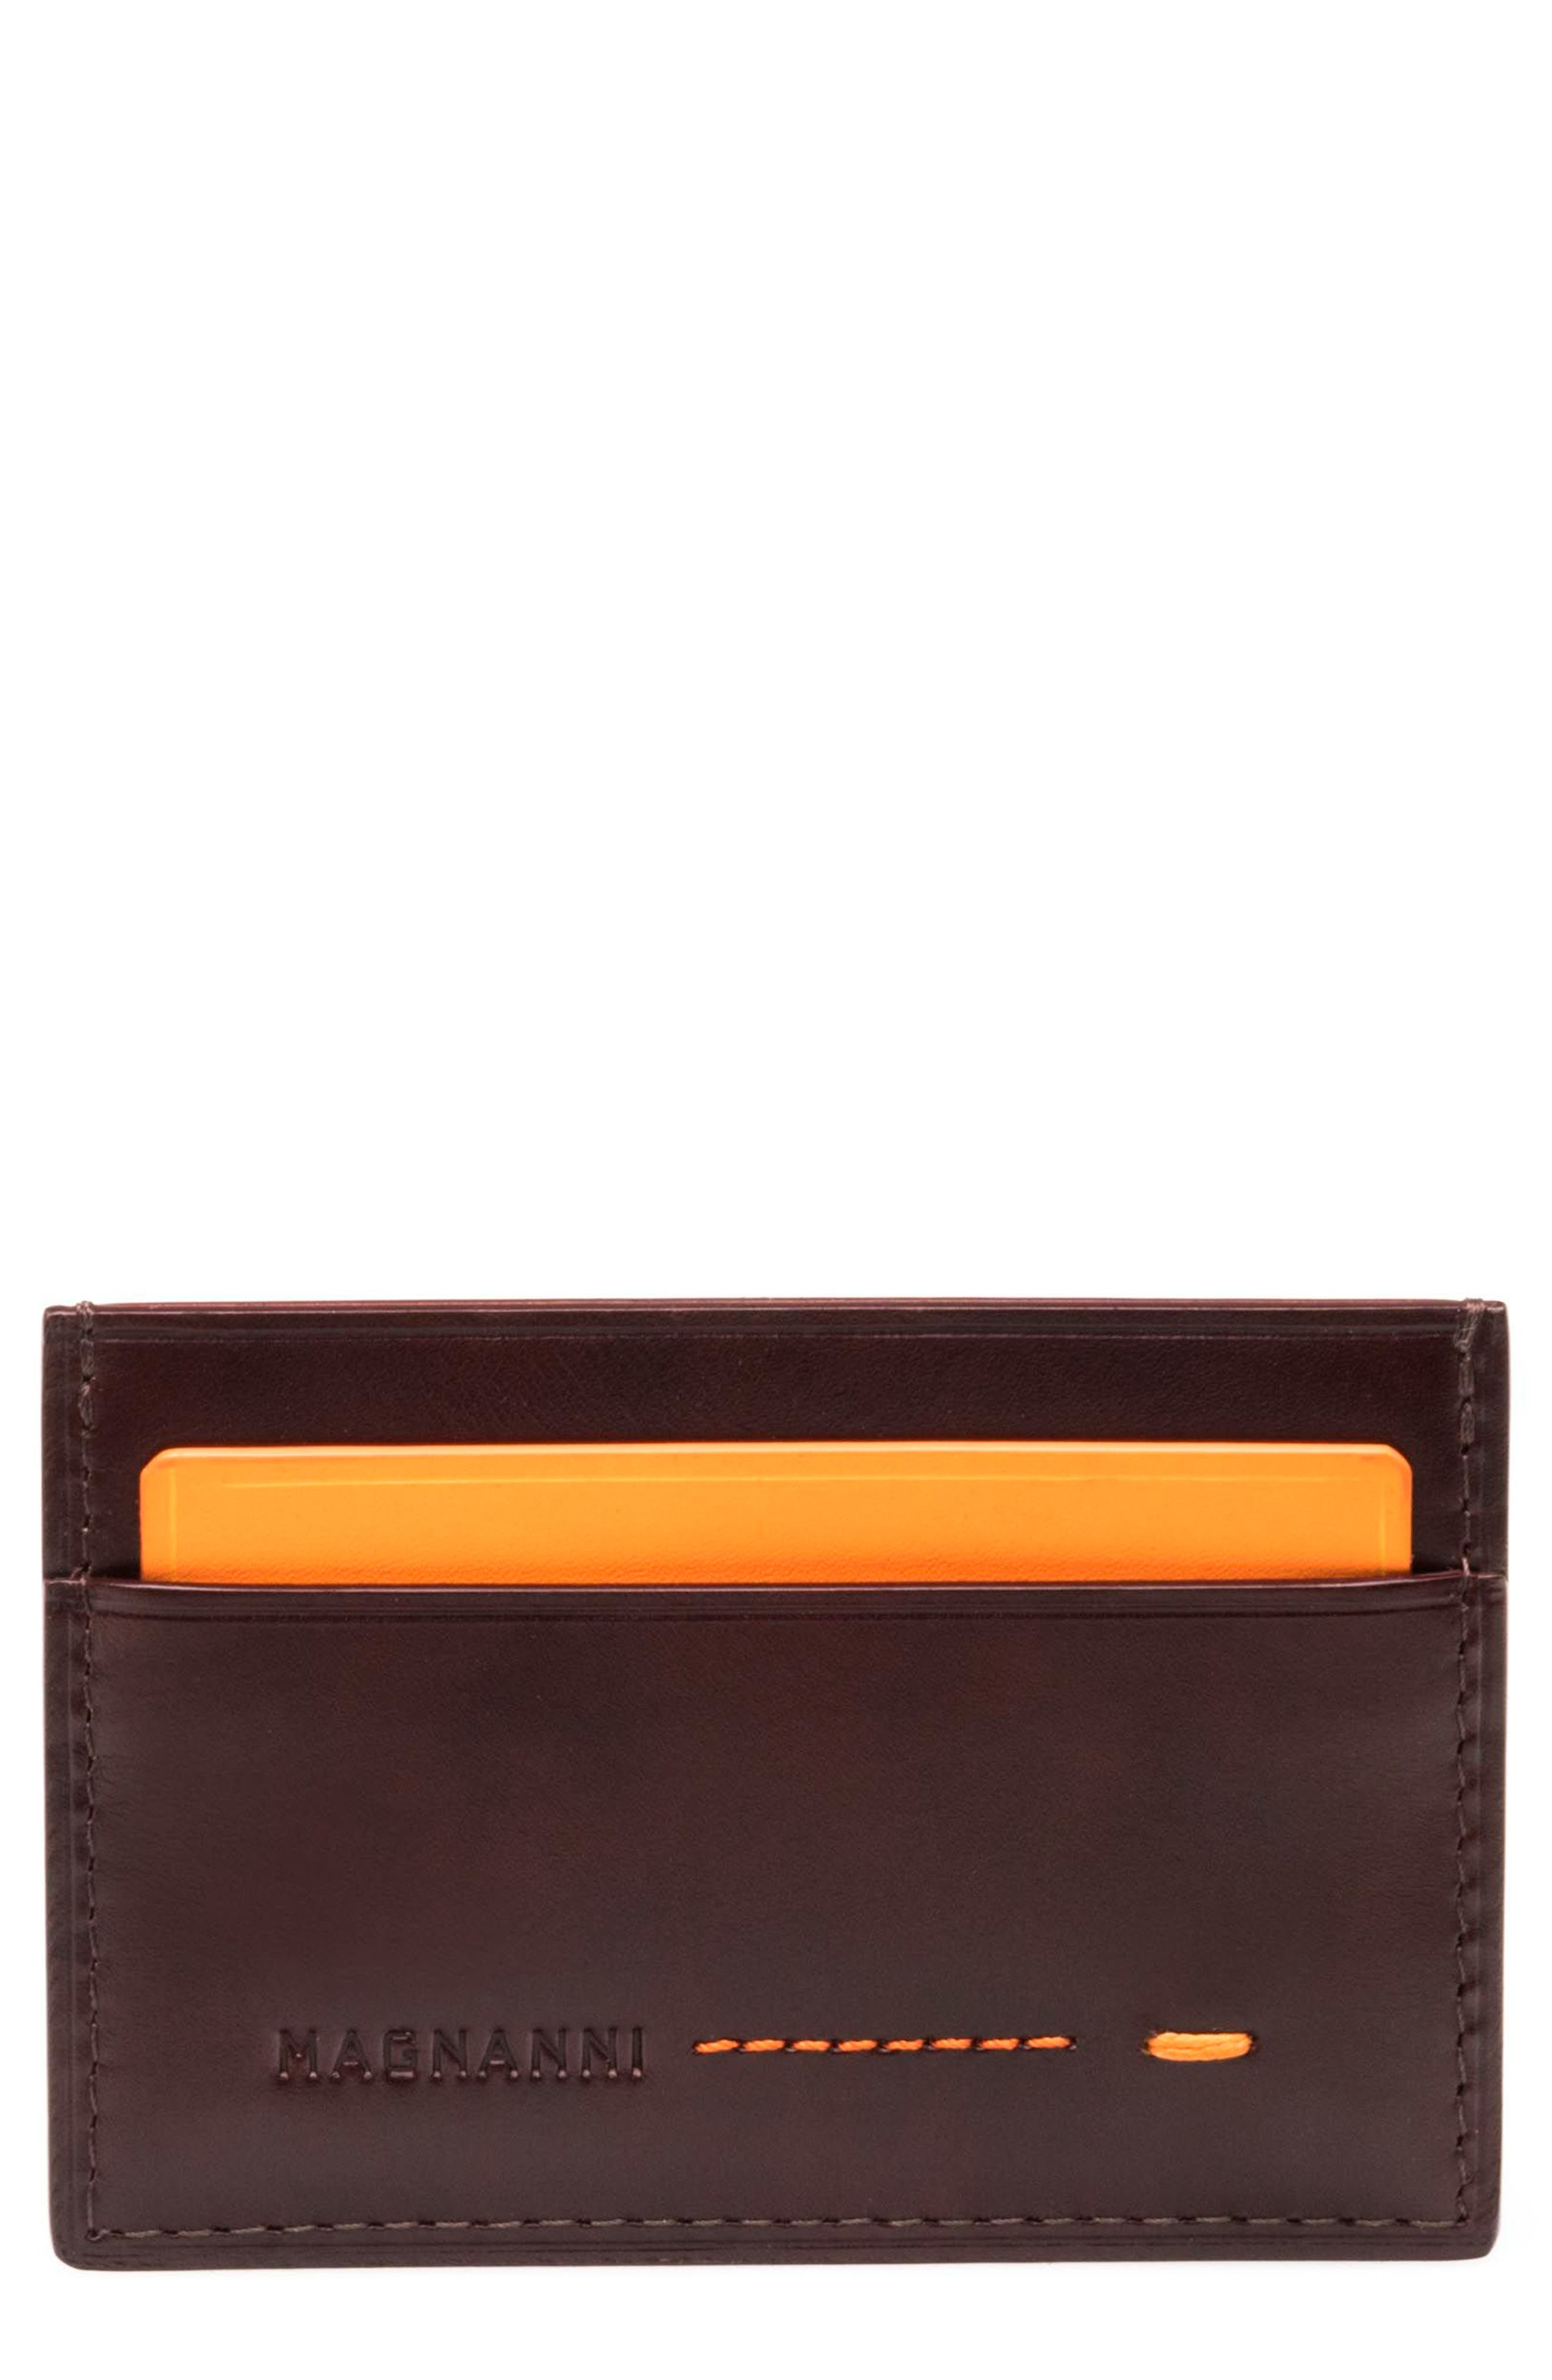 Leather Card Case,                         Main,                         color, 210